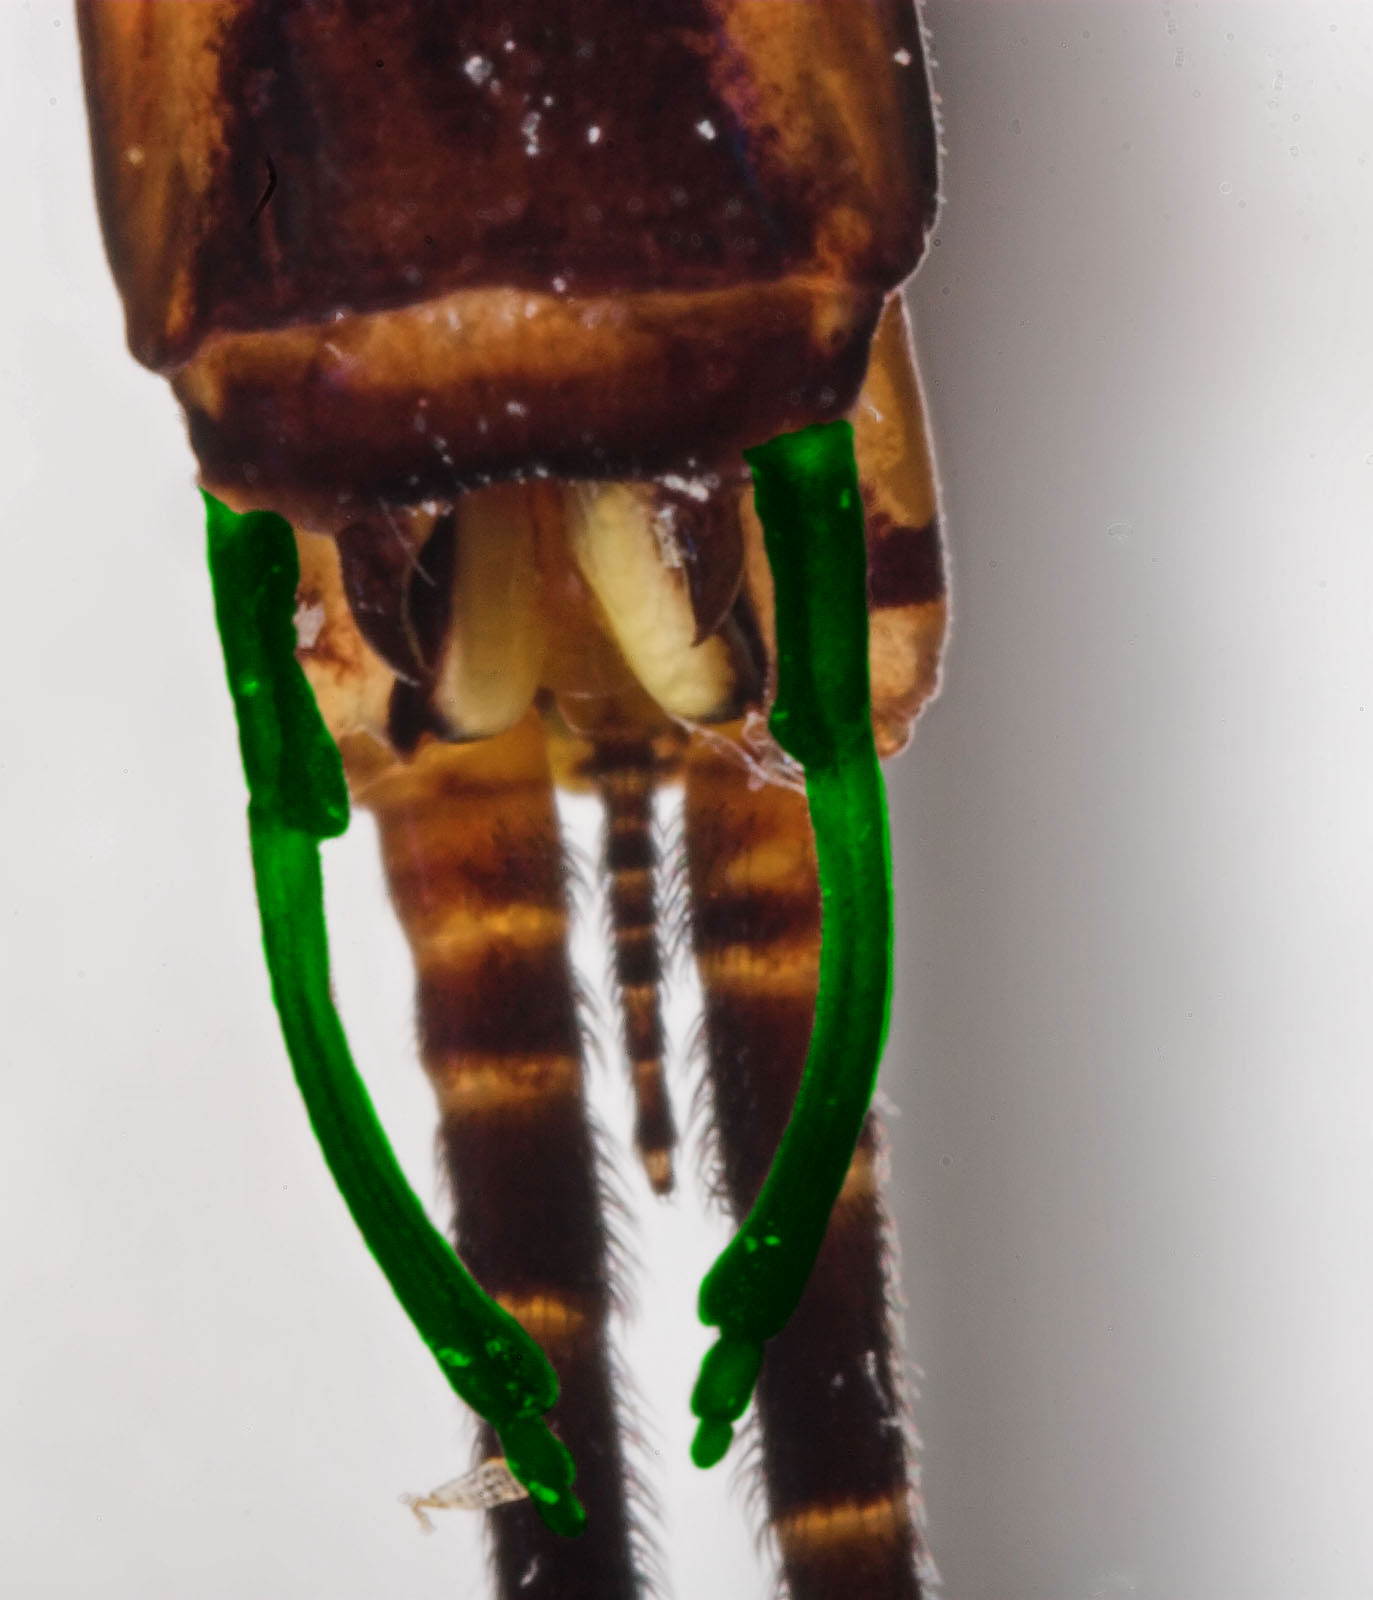 The claspers of this male Hexagenia atrocaudata mayfly spinner are highlighted in green.